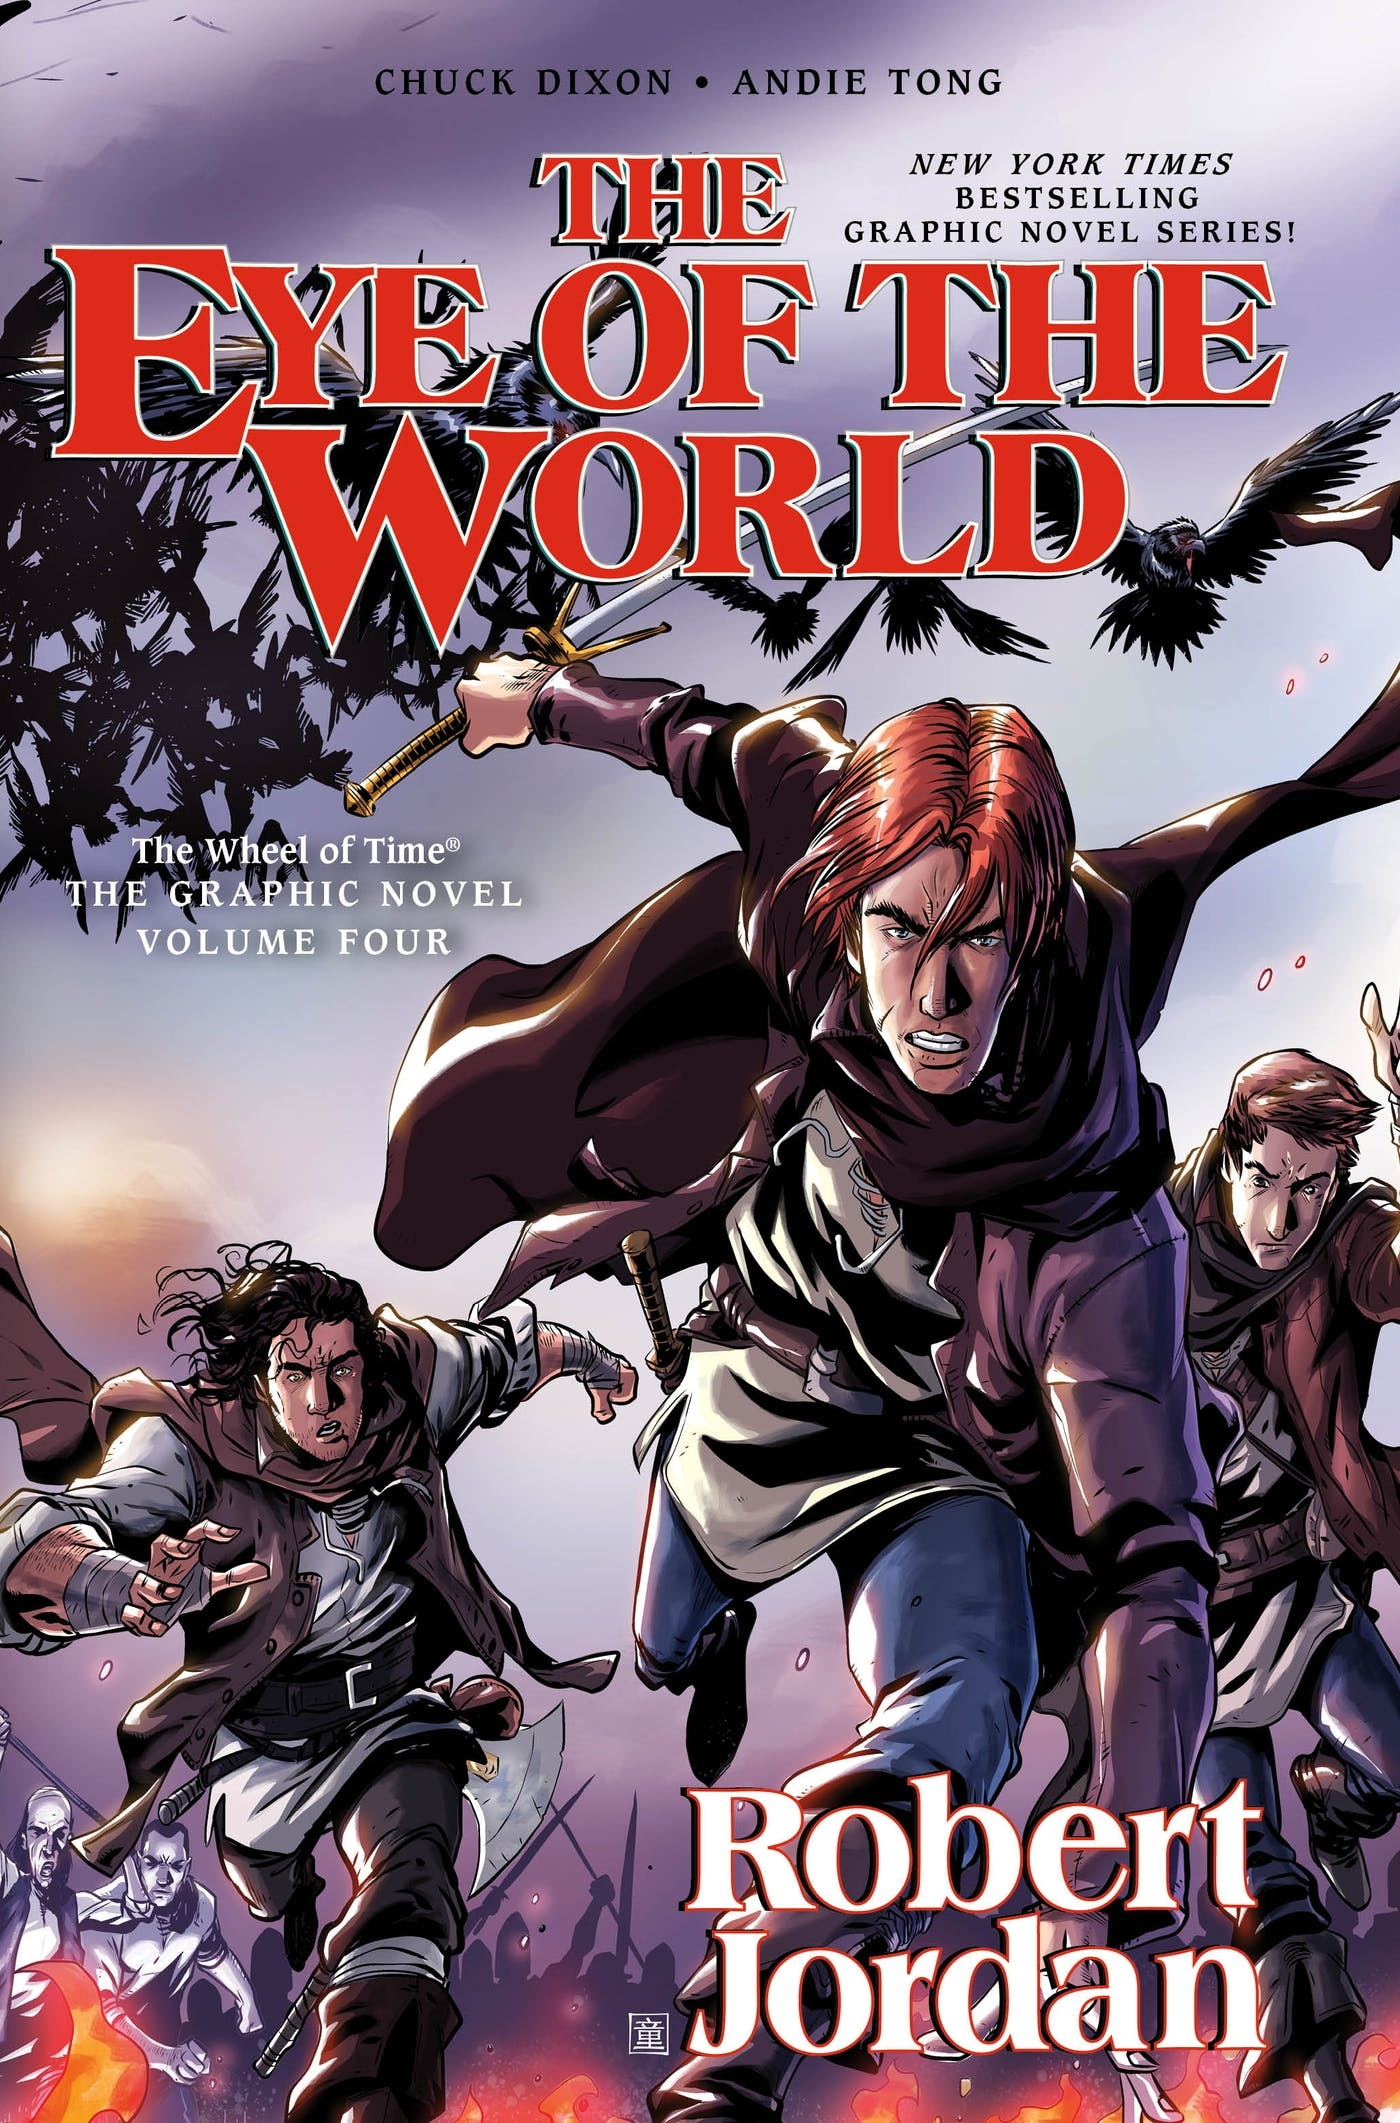 Image of The Eye of the World: The Graphic Novel, Volume Four